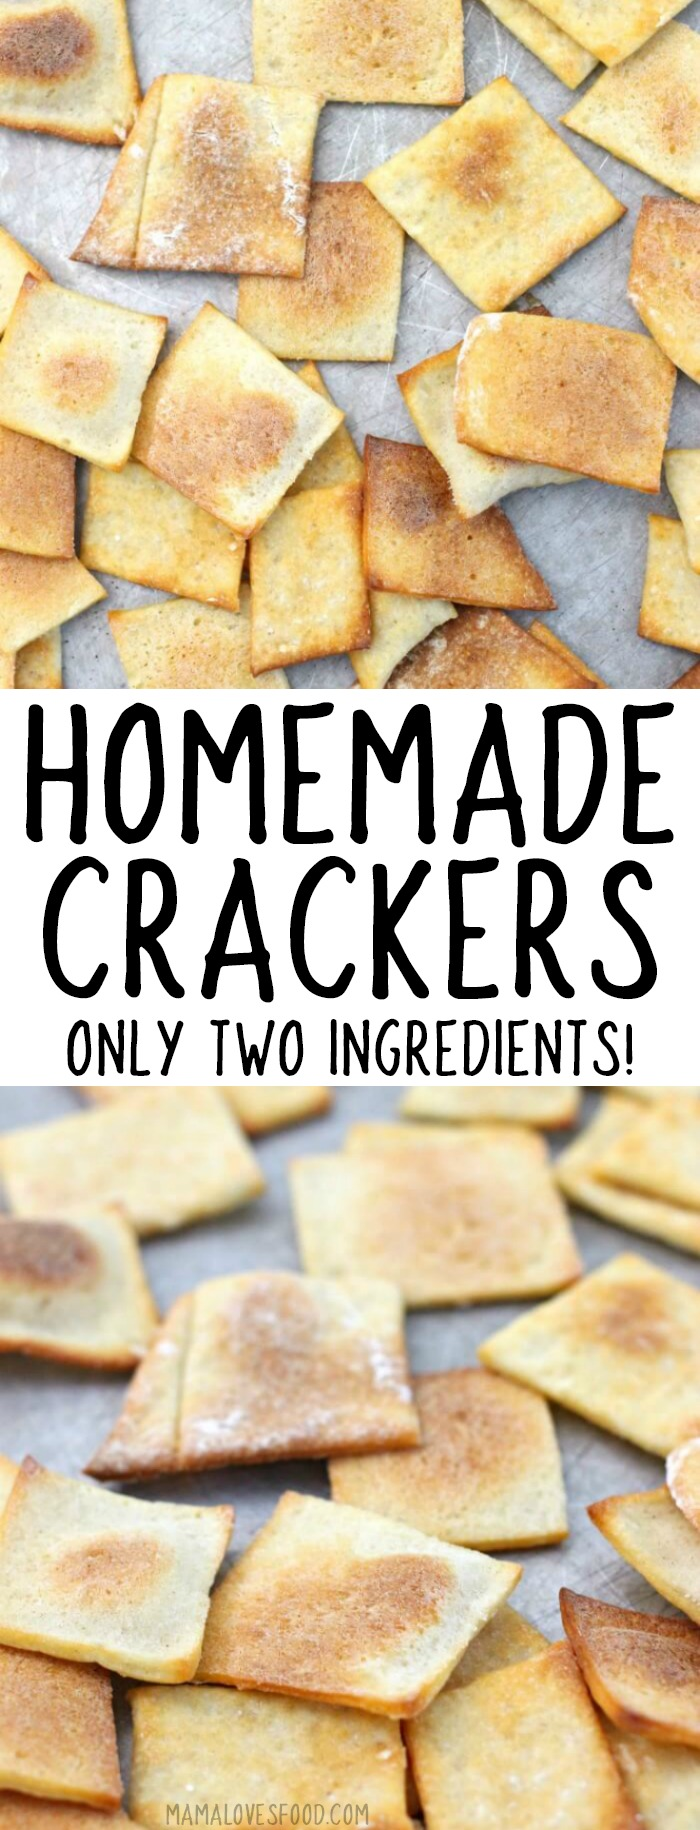 CRACKERS RECIPE HOMEMADE